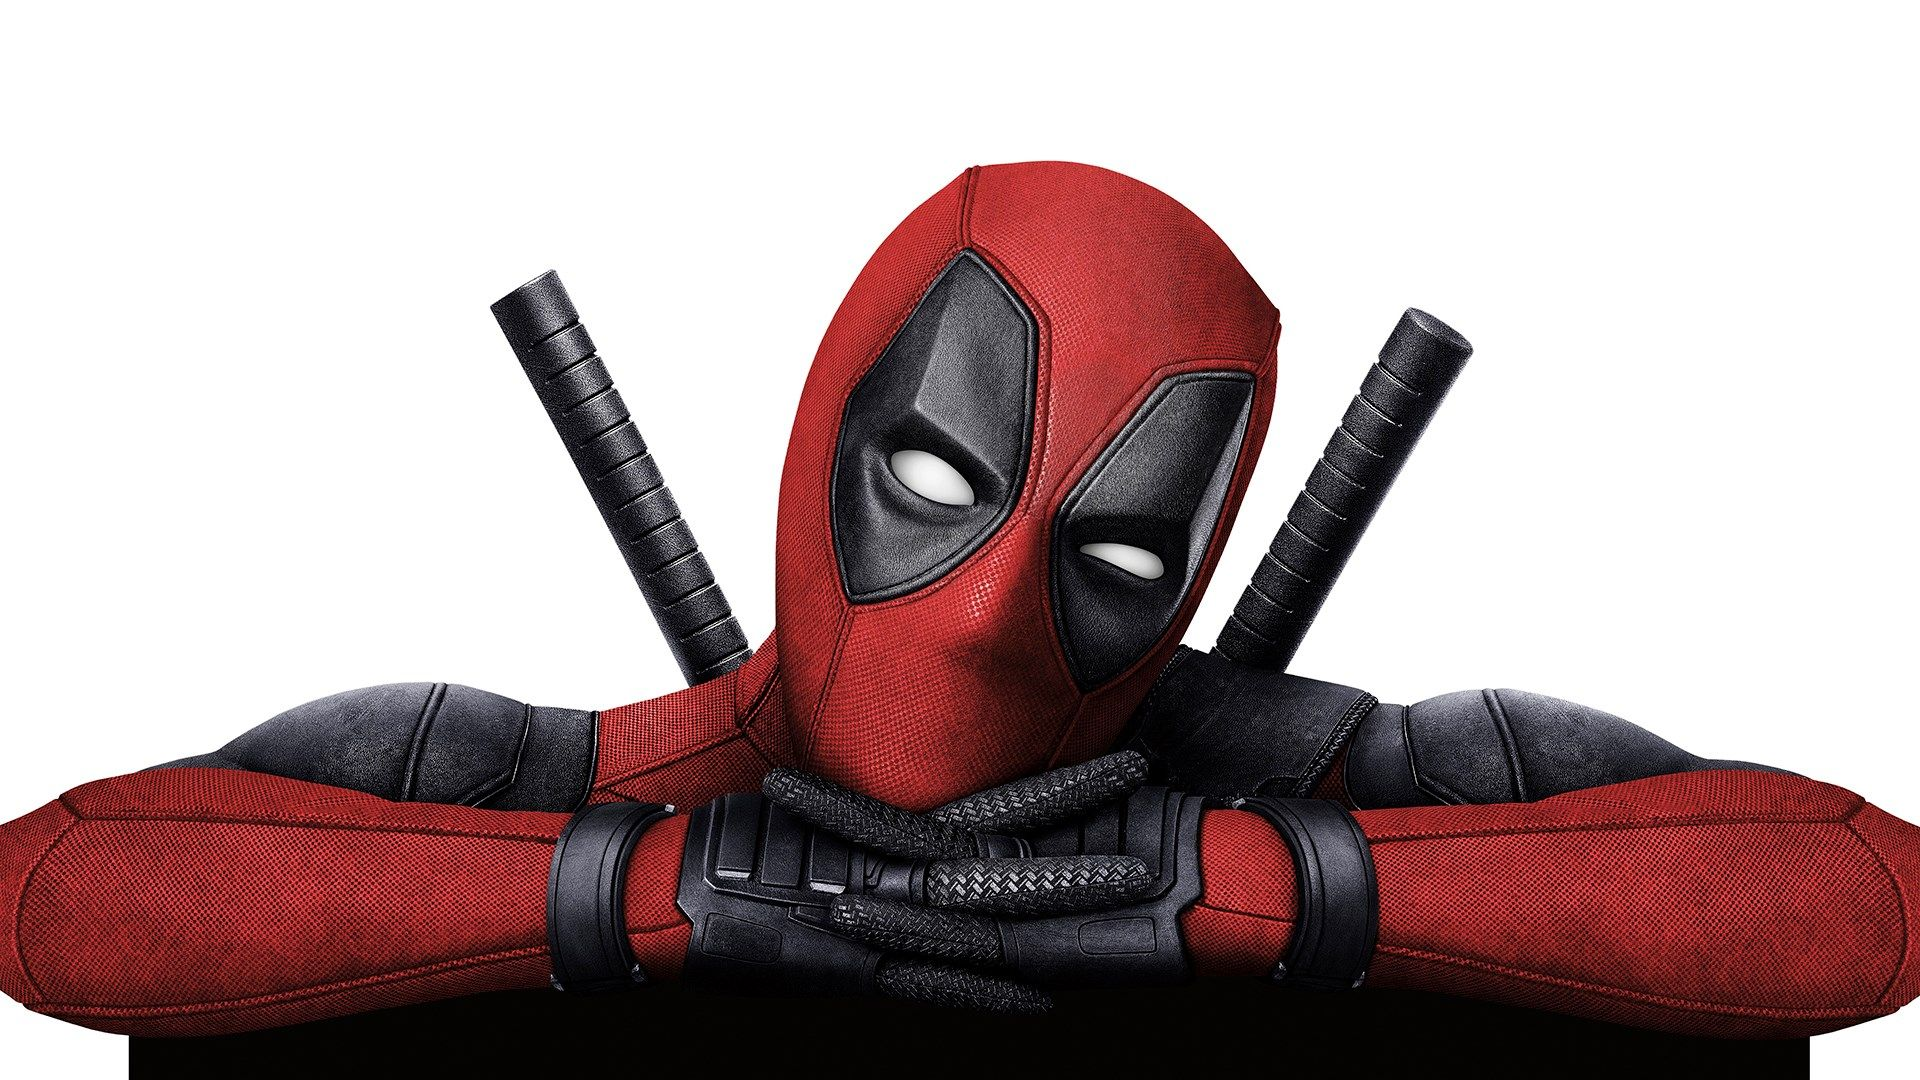 4k Deadpool Wallpapers Top Free 4k Deadpool Backgrounds